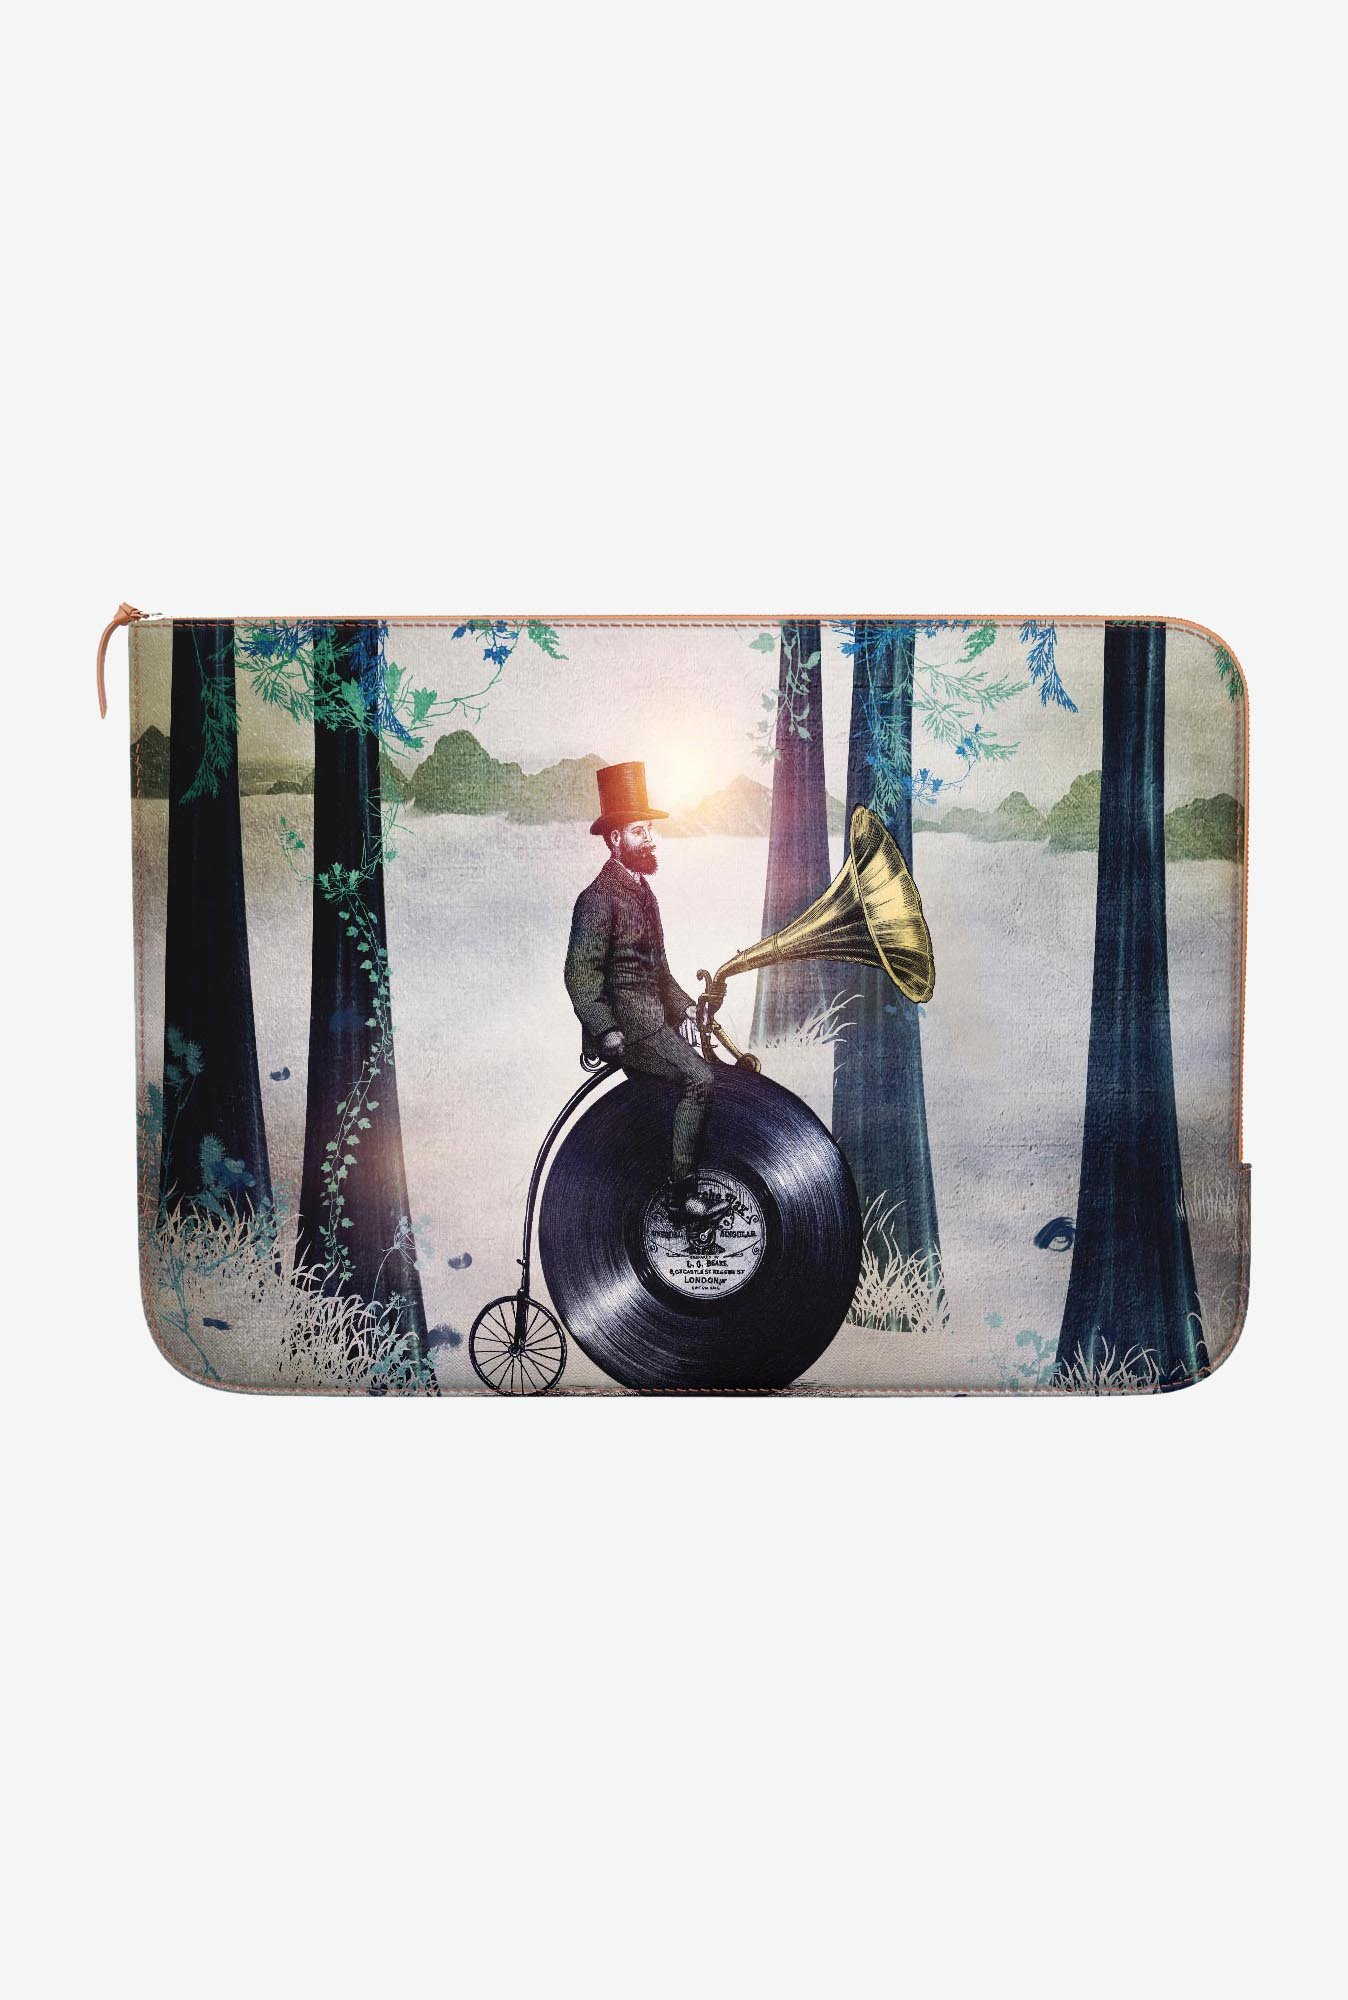 DailyObjects Man In Forest MacBook Pro 13 Zippered Sleeve